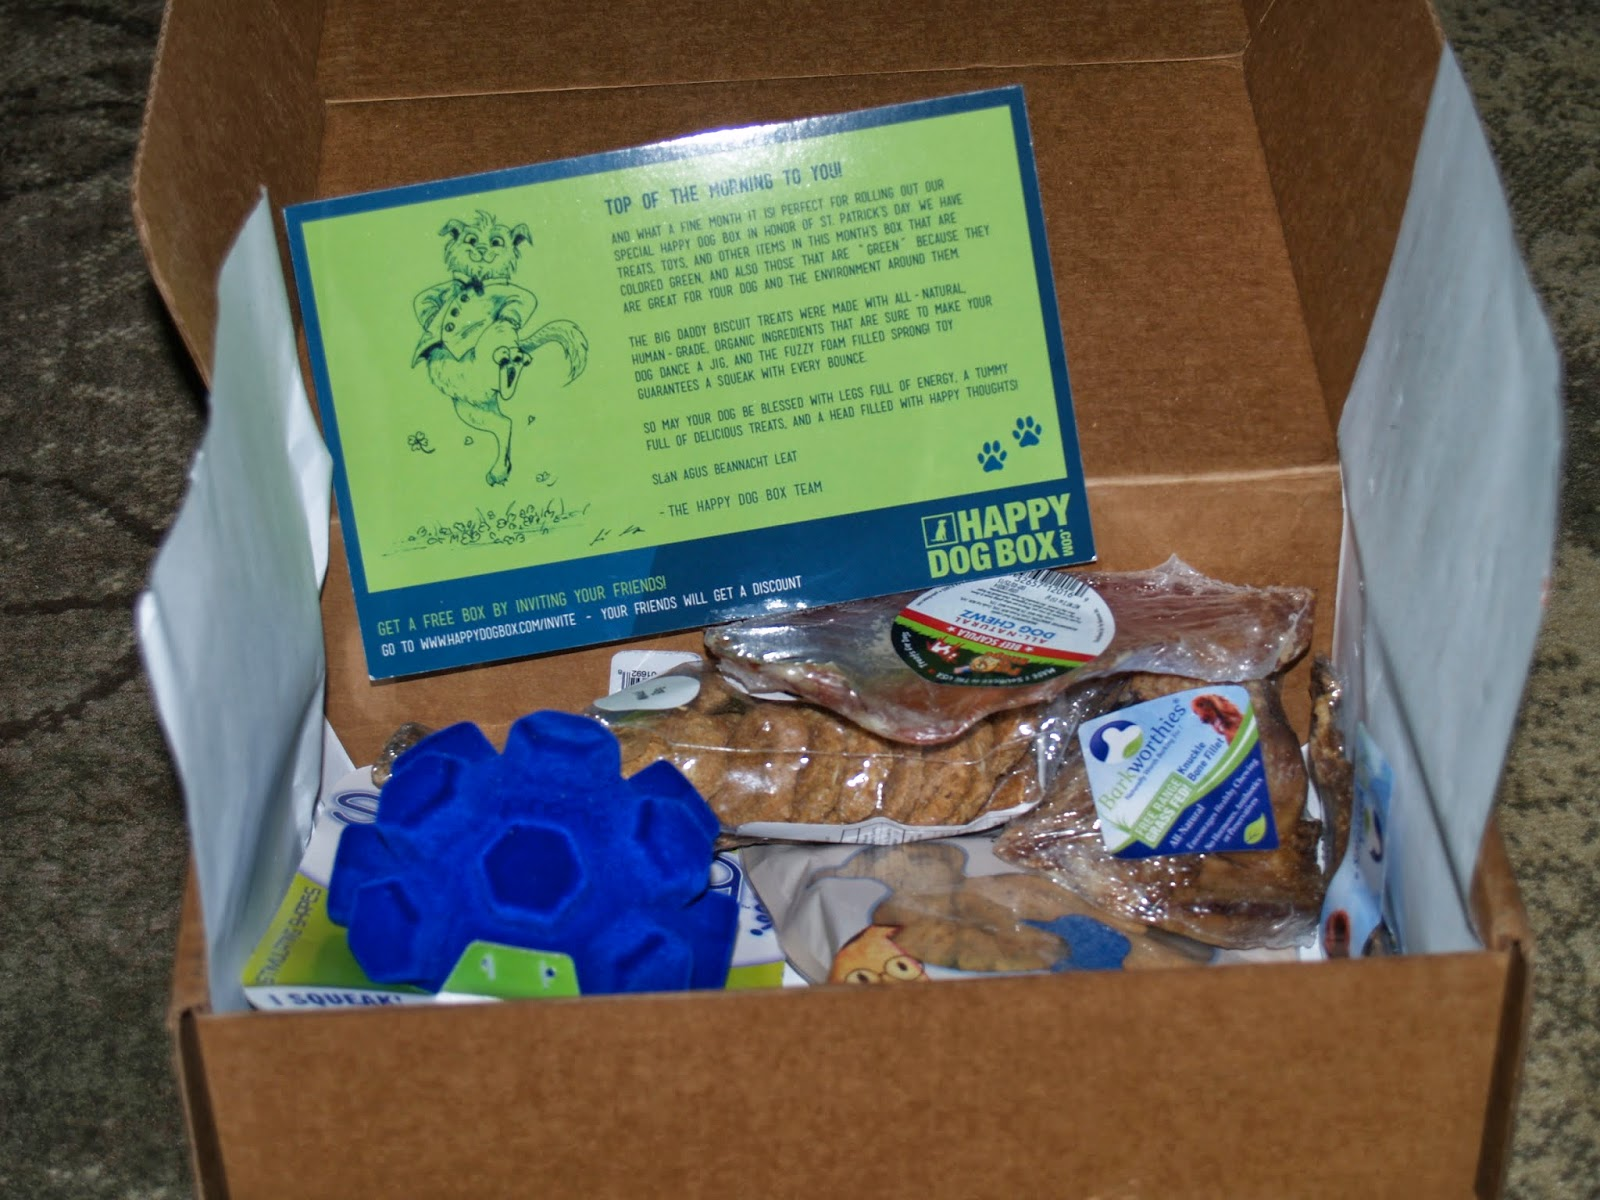 Whats in a happy dog box